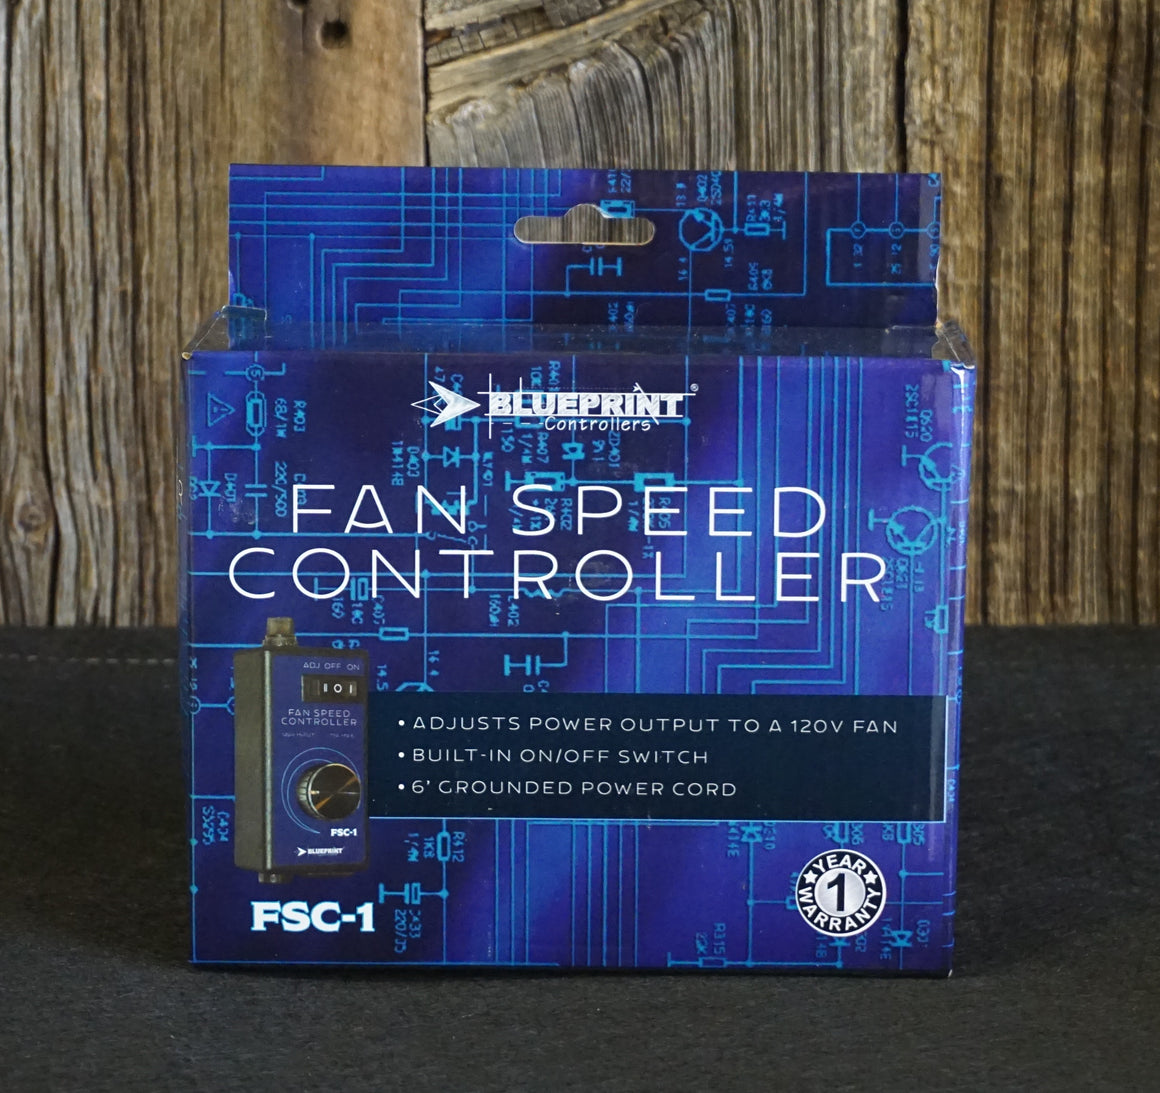 Blueprint Fan Speed Controller